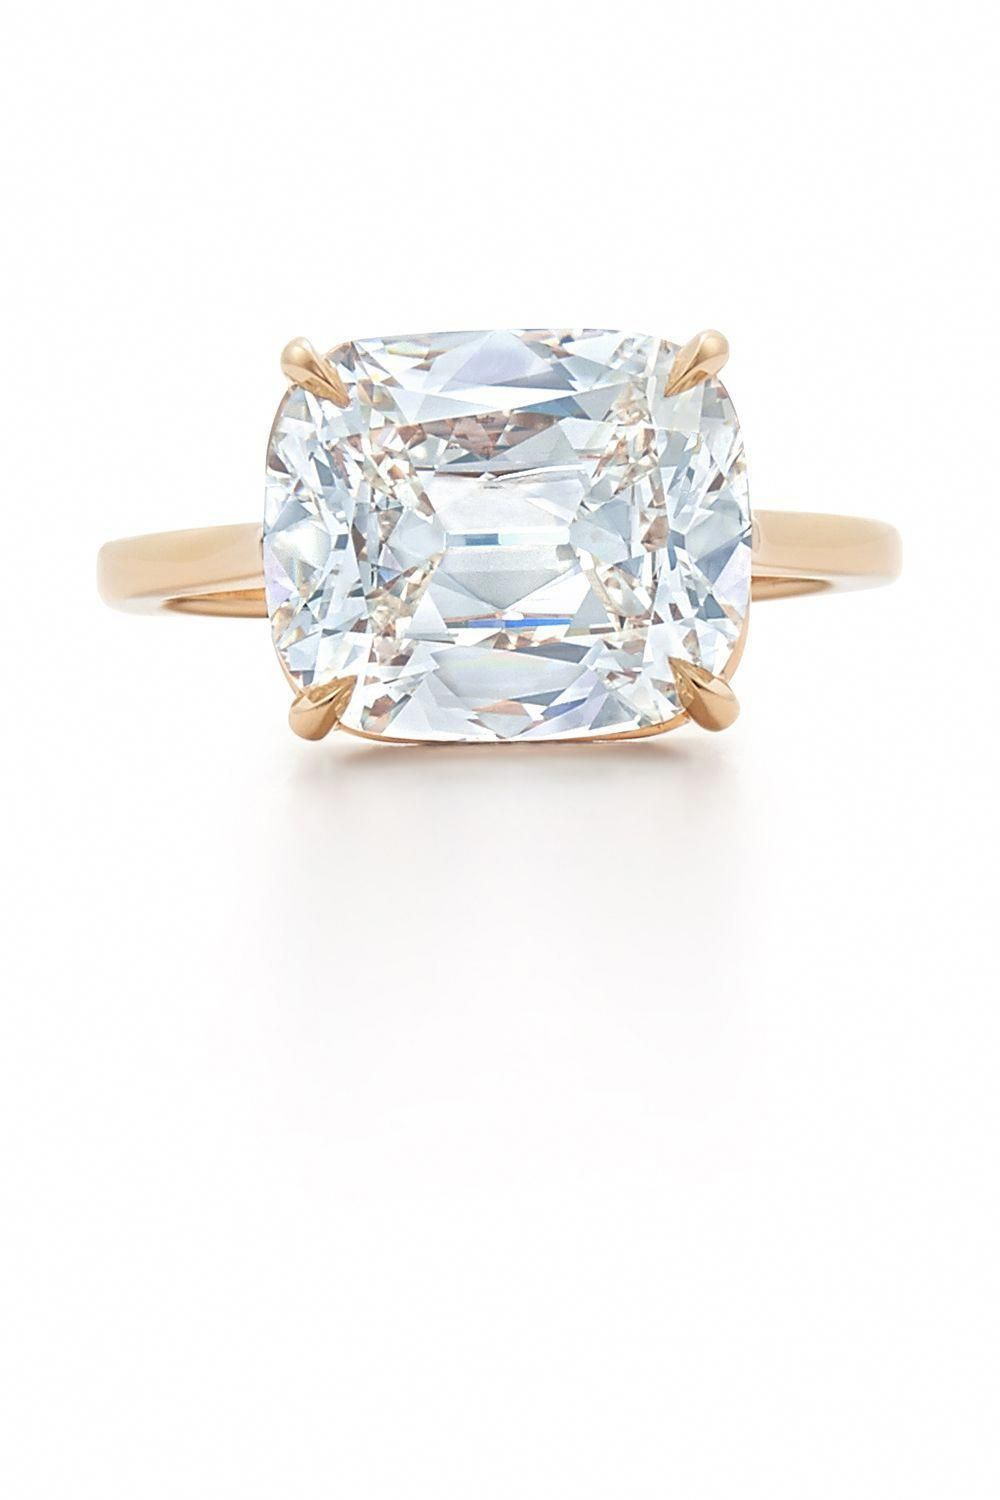 10603de3adf9 25 Cushion-Cut Engagement Rings to Swoon Over- HarpersBAZAAR.com   gorgeousfinerings